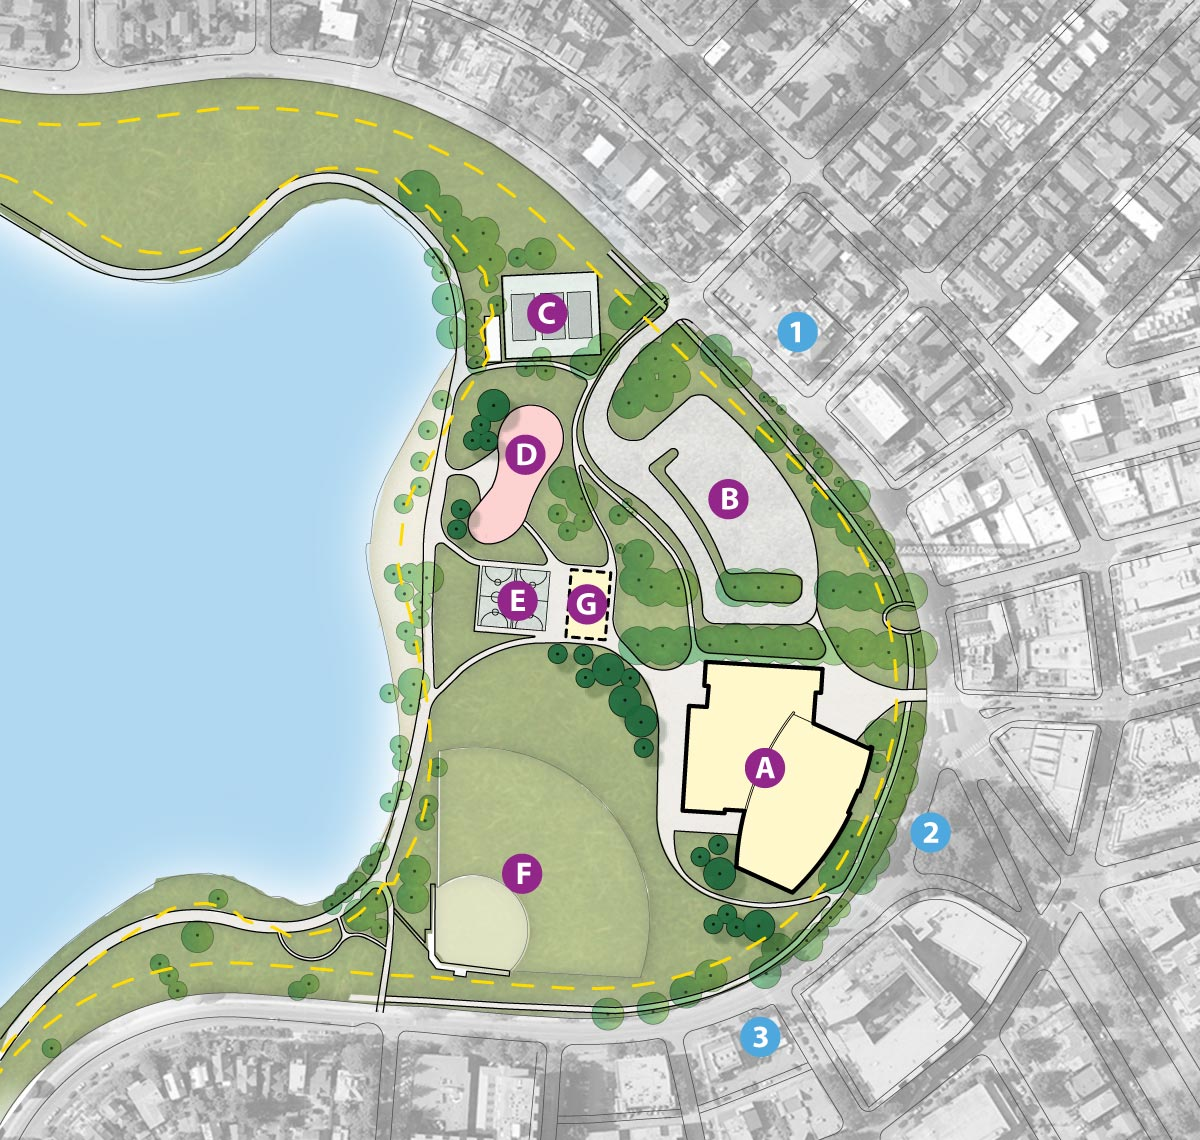 A map showing the Neighborhood Connection site at the northwest side of Green Lake Park.